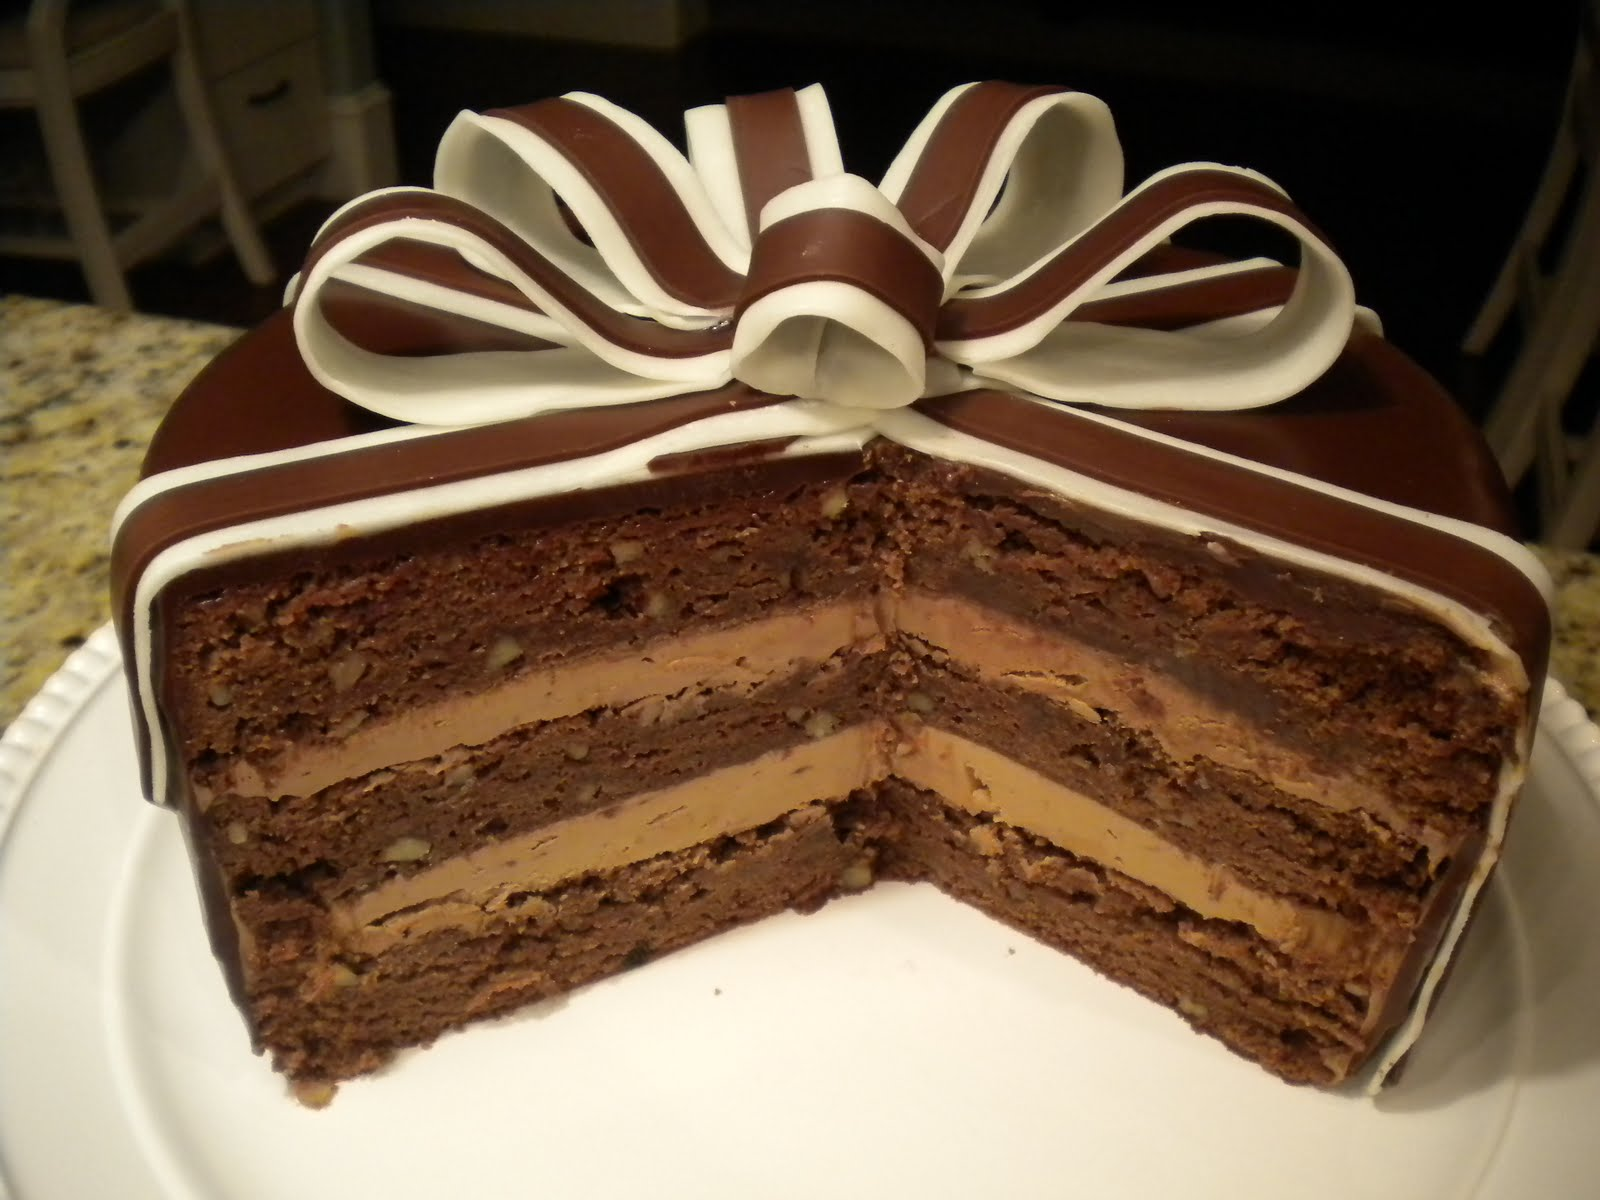 ... by Step Gourmet: Spiced Chocolate Torte Wrapped in Chocolate Ribbons